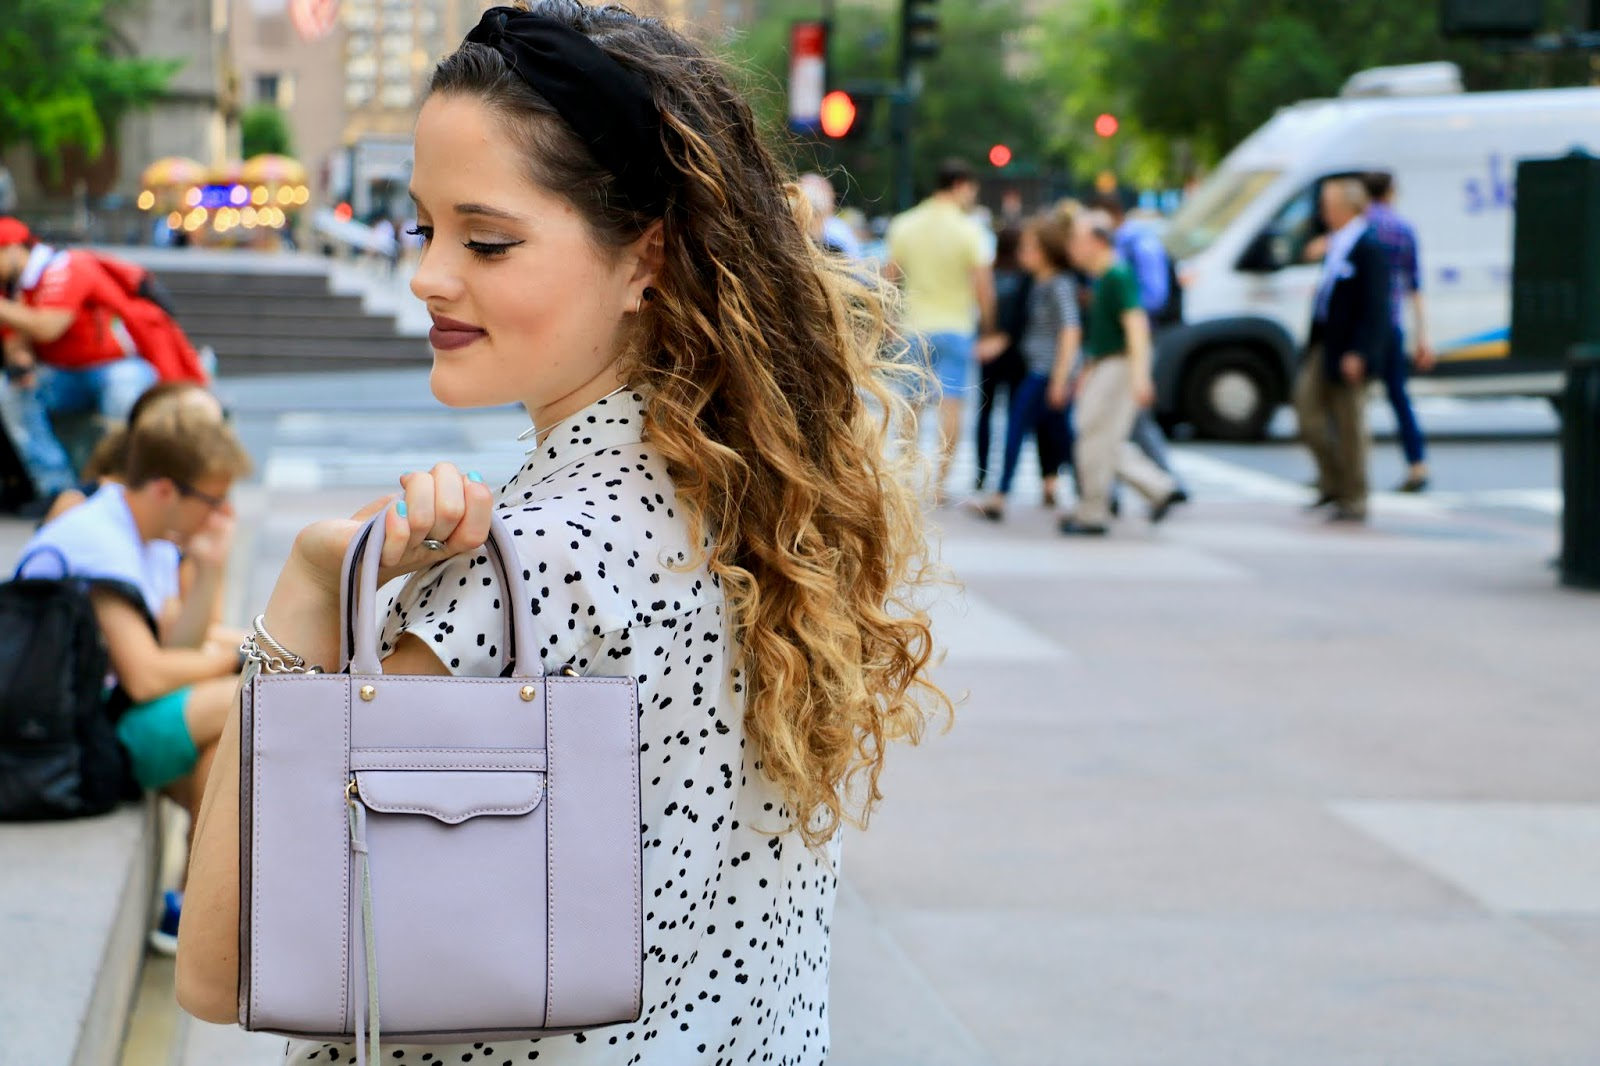 Nyc fashion blogger Kathleen Harper's purple Rebecca Minkoff top handle purse